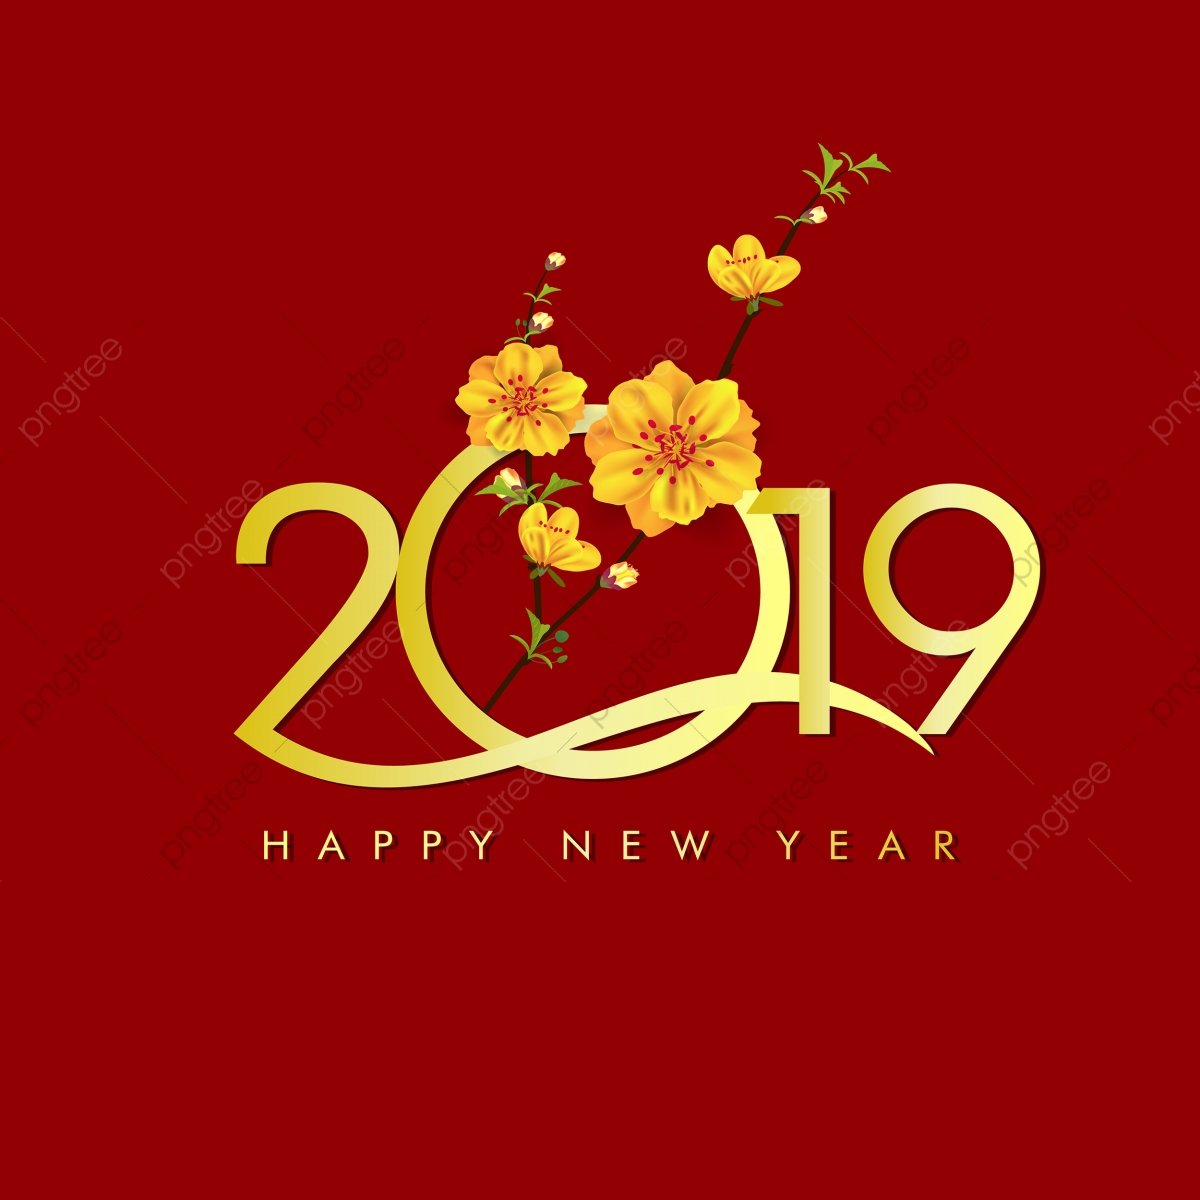 Happy New Year 2019 Chienese New Year Year Of The Pig, 2019